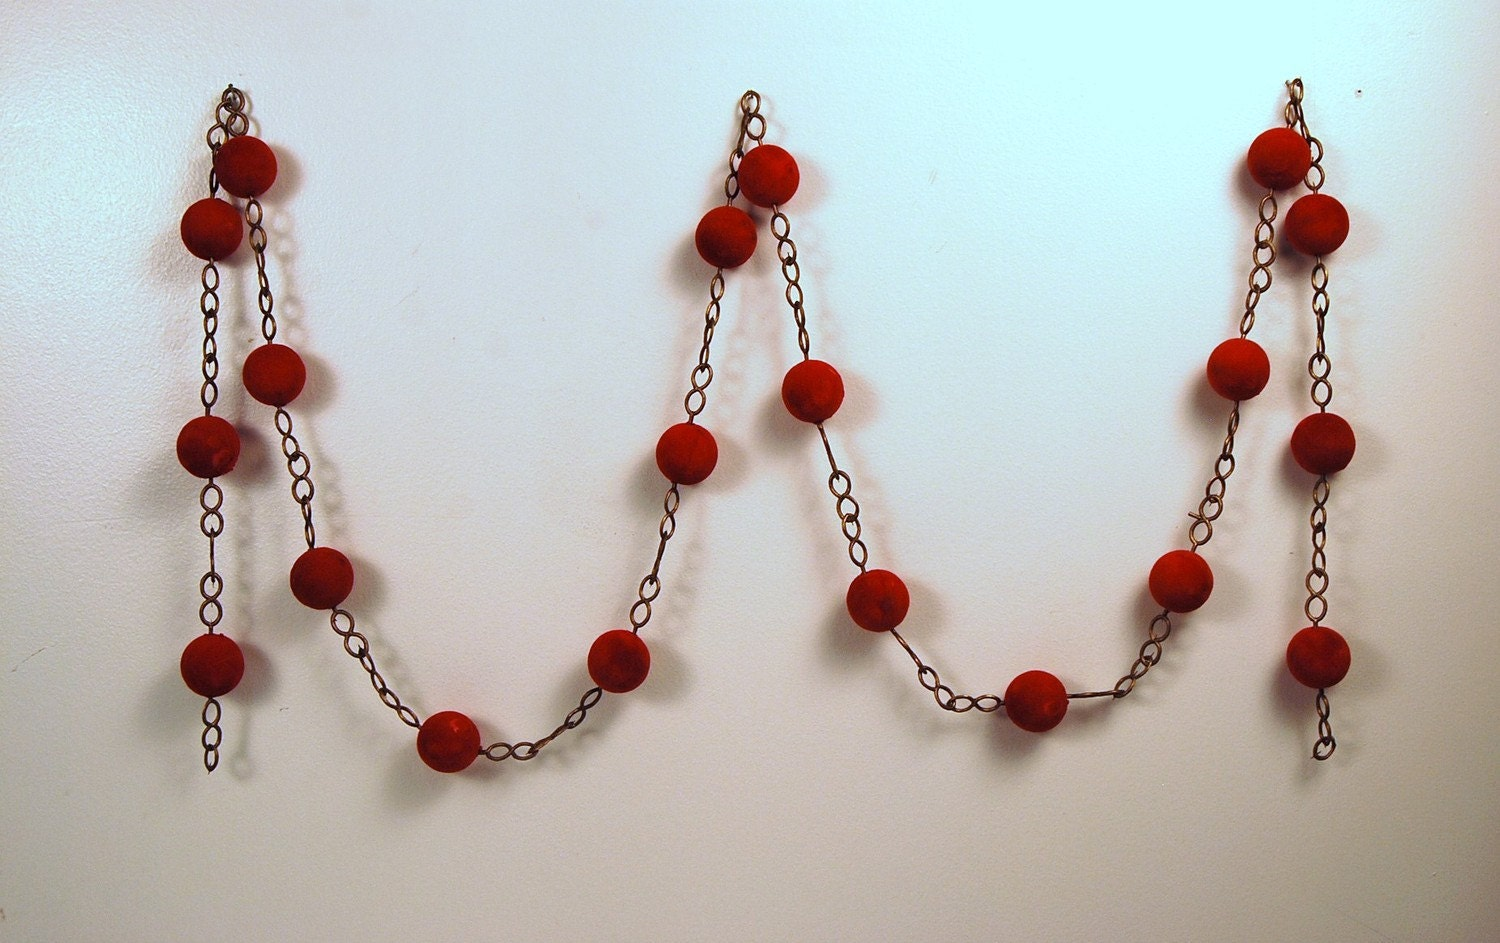 Vintage 1960's RED Round and Gold CHAIN Garland........six feet